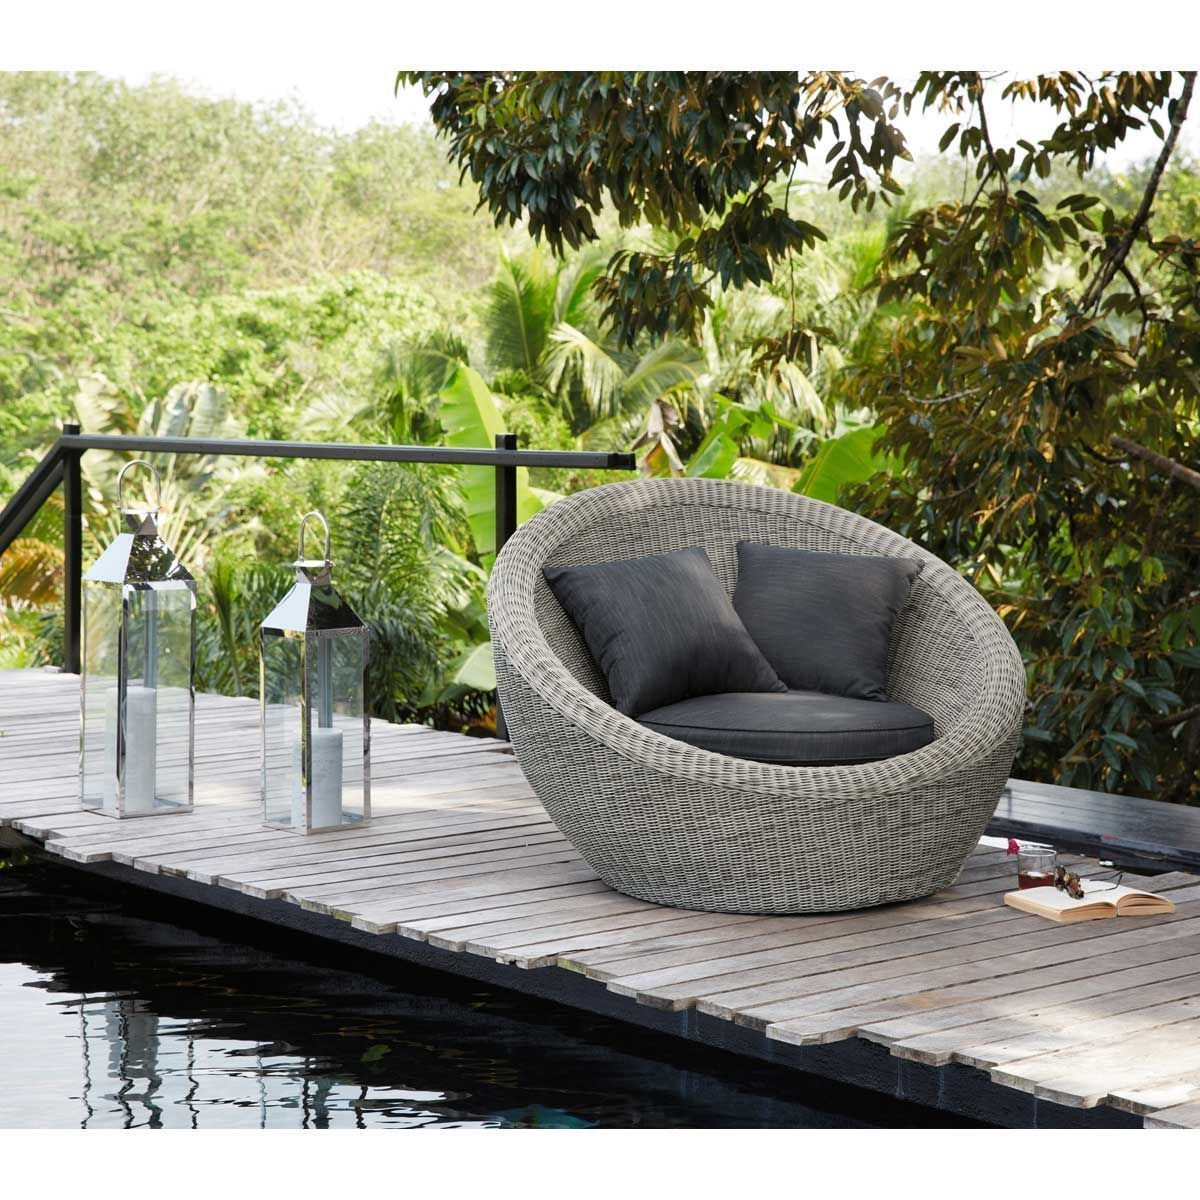 Round Gray Resin Wicker Outdoor Lounge Chair In 2020 Lounge Chair Outdoor Patio Lounge Chairs Resin Wicker